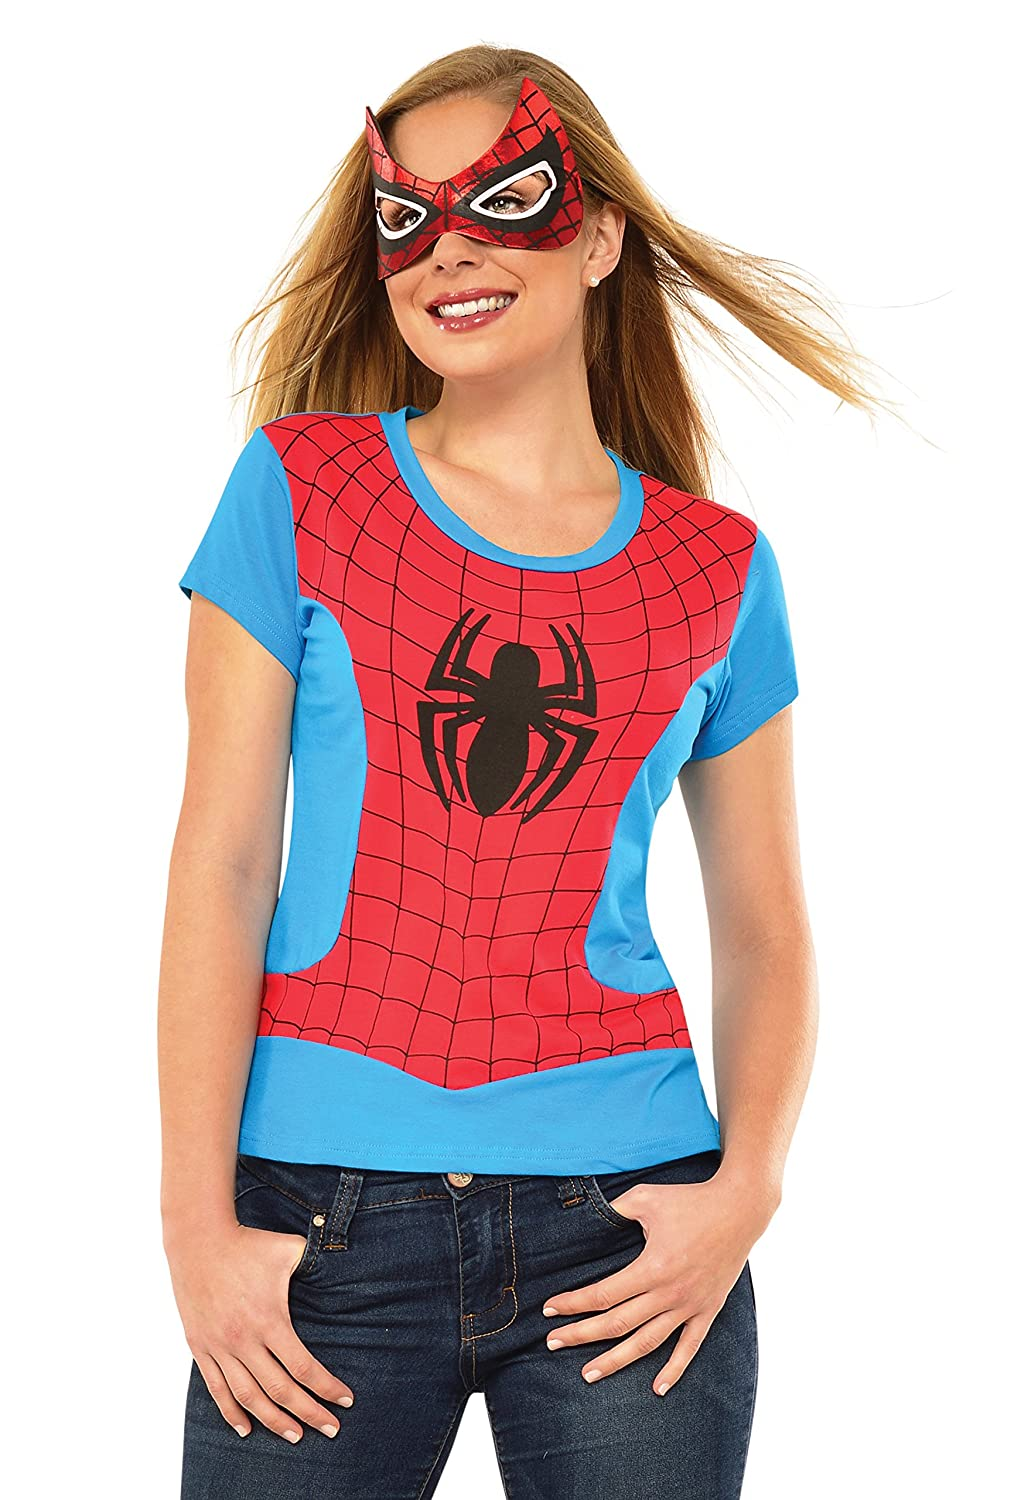 Marvel Rubie's Costume Co Women's Universe Spider-Girl Classic T Shirt Rubies Costumes - Apparel 810422